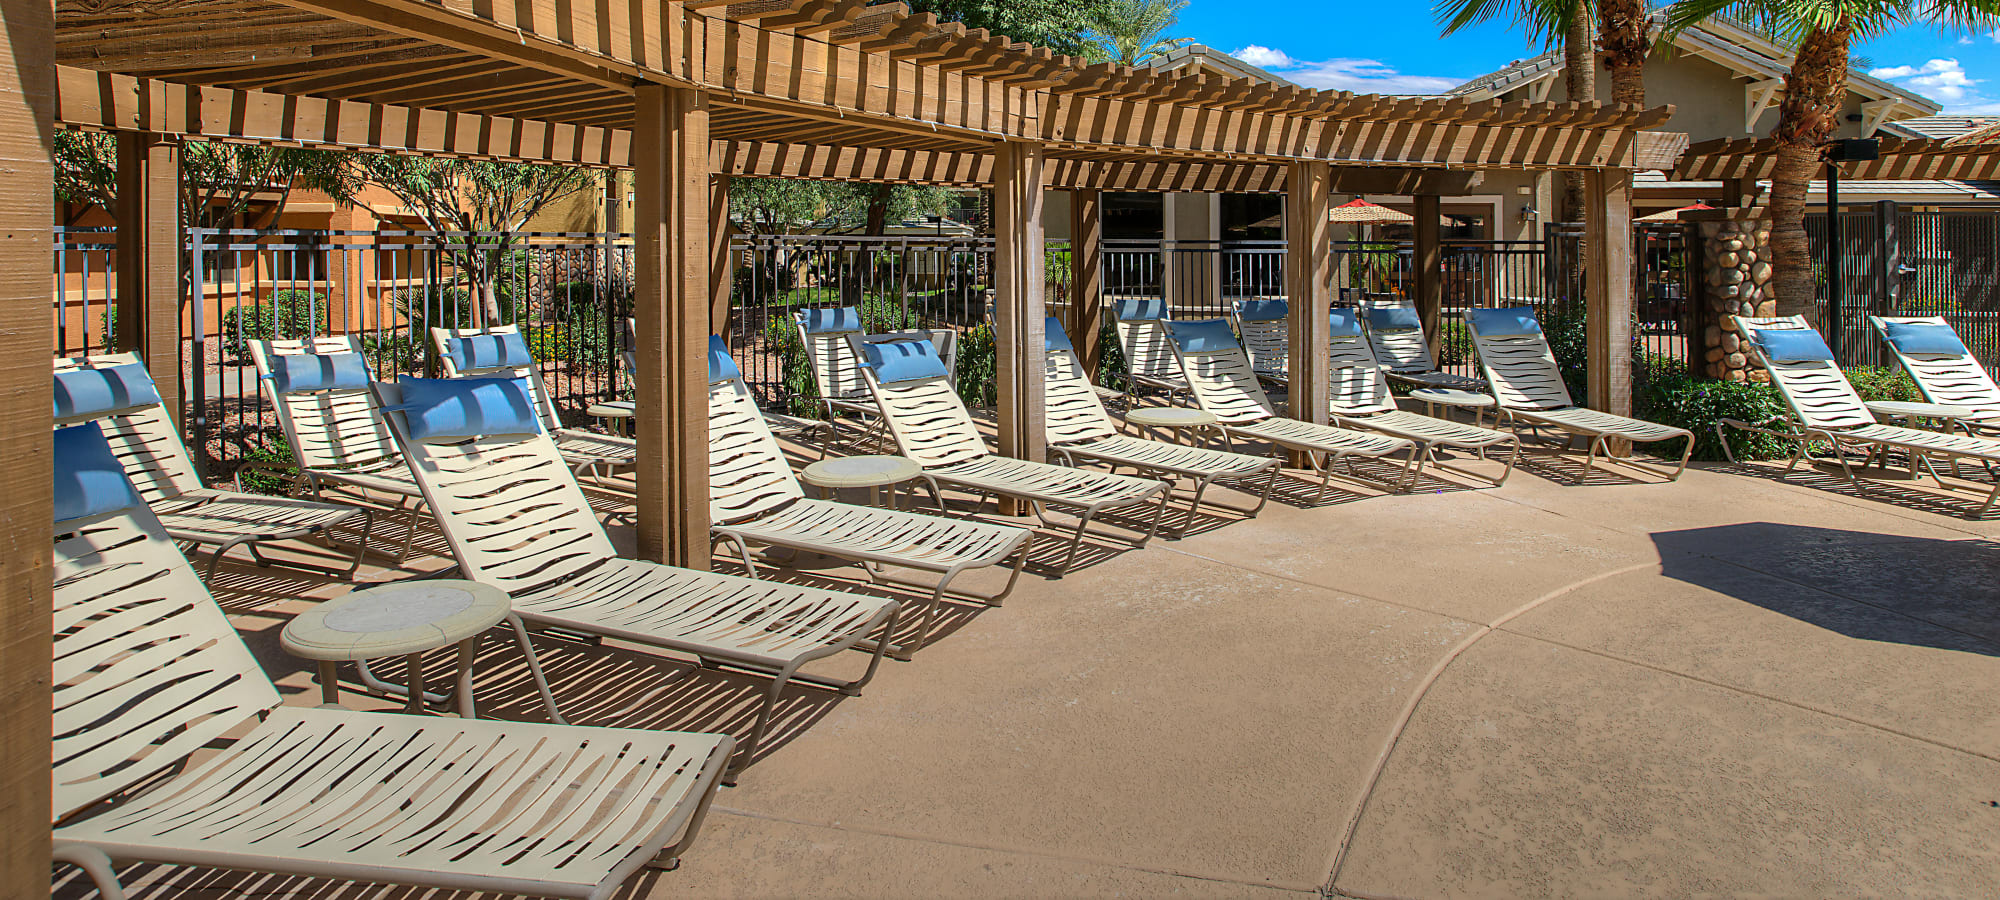 Plenty of seating next to the swimming pool at Azul at Spectrum in Gilbert, Arizona